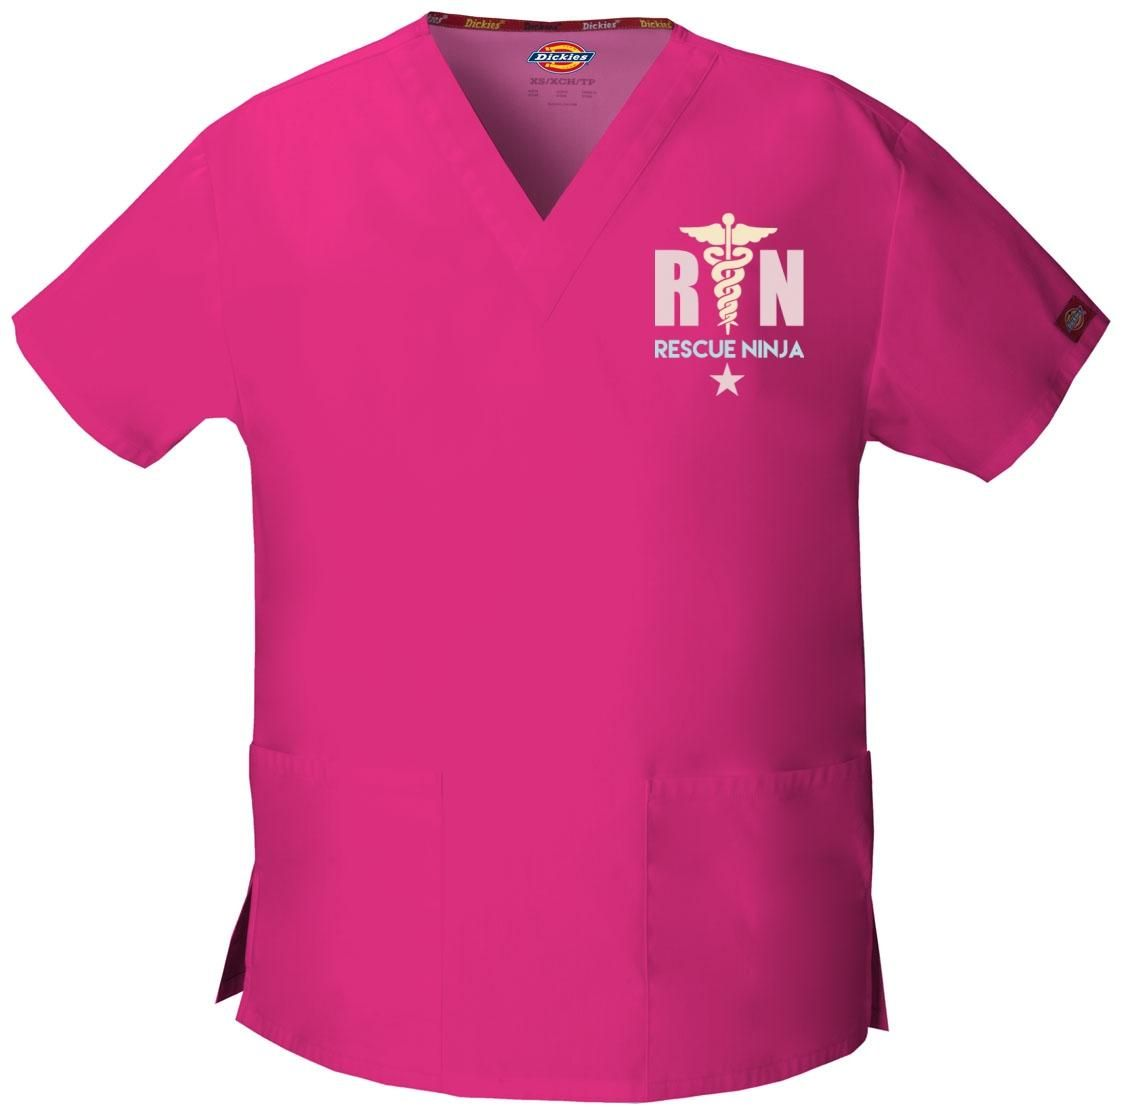 Rescue Ninja Embroidered Scrub Top. Click Image For More Info.